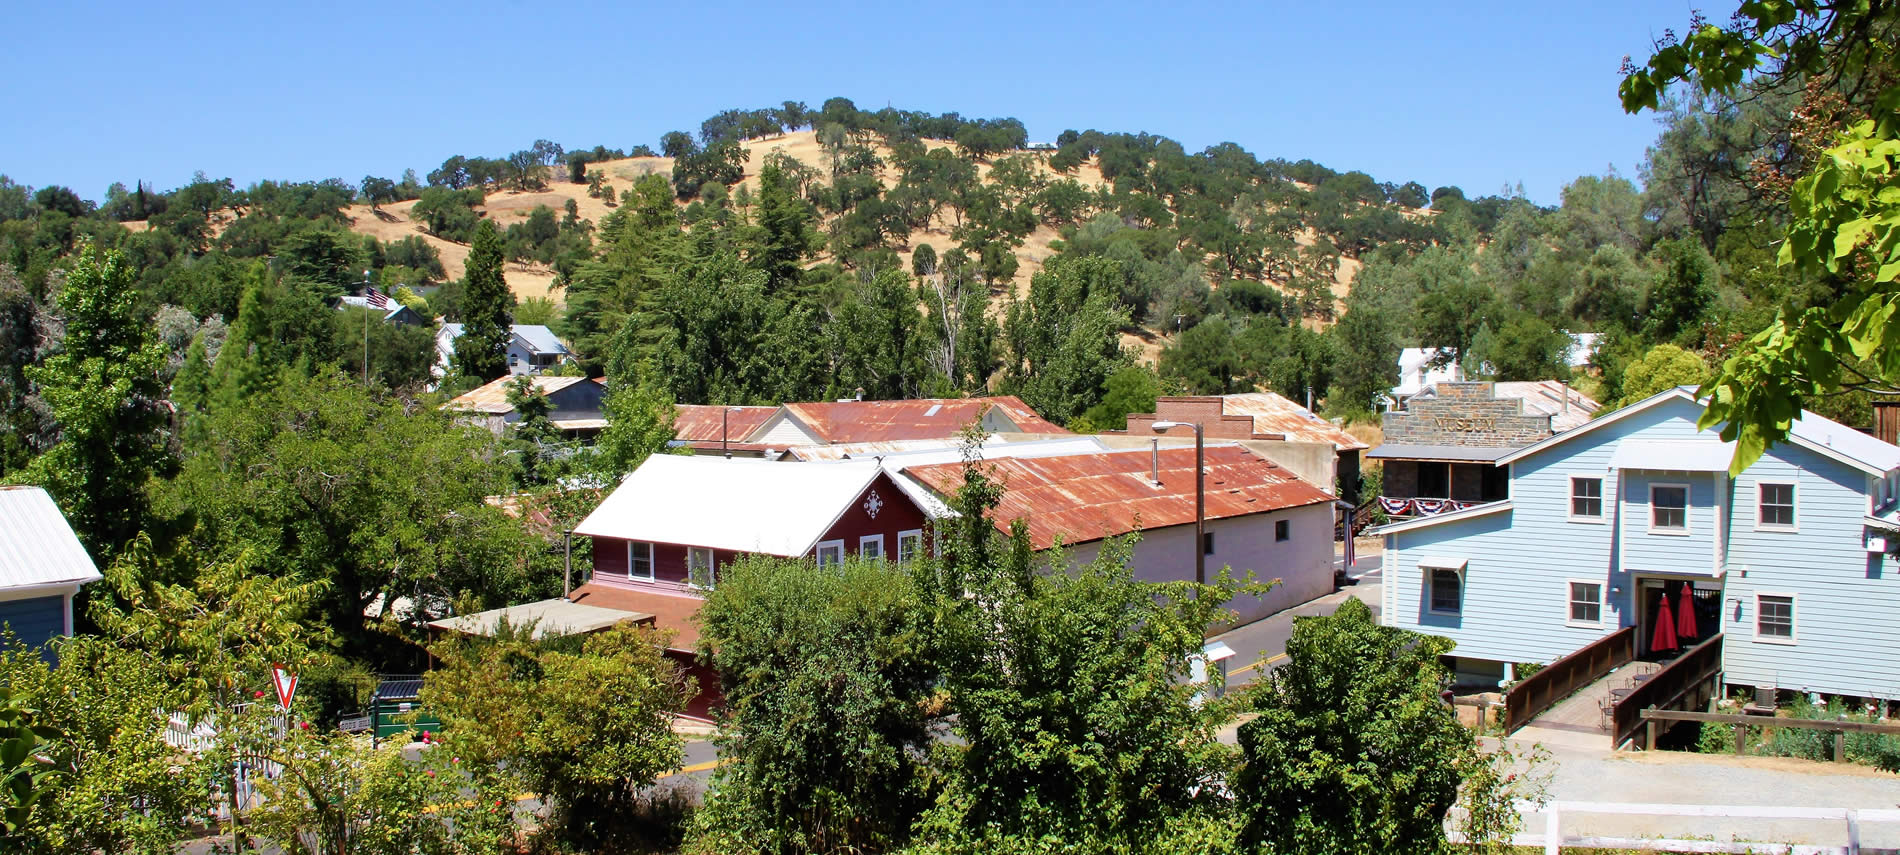 amador city in california gold country